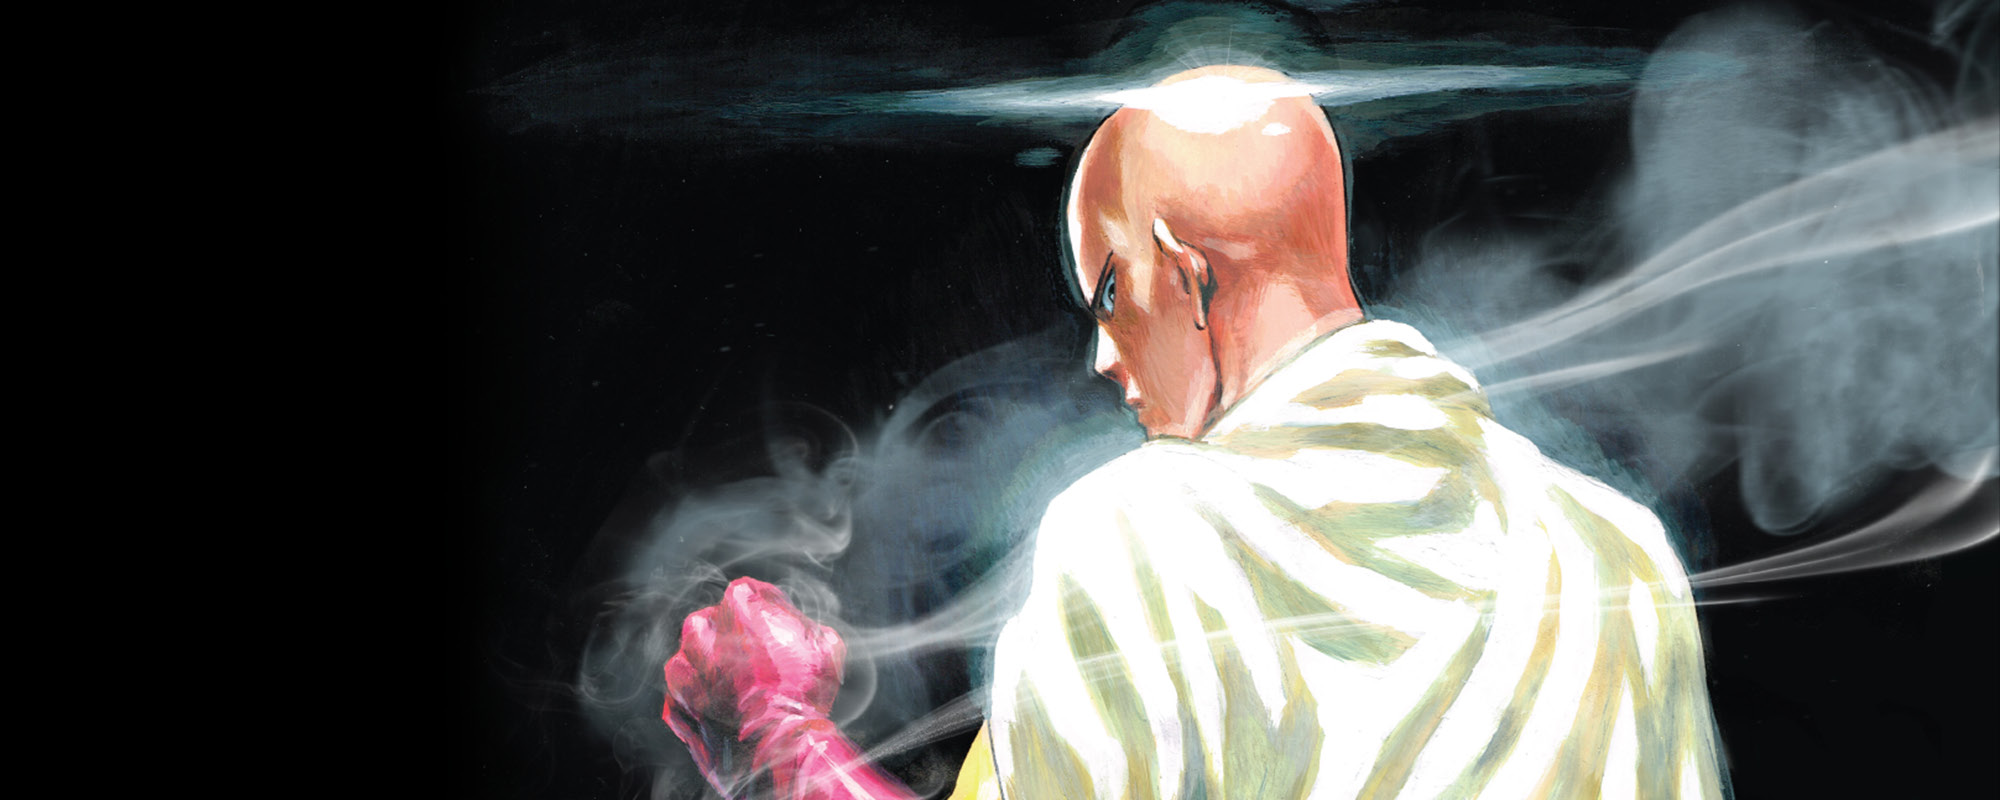 VIZ | Read One-Punch Man Manga Free - Official Shonen Jump From Japan